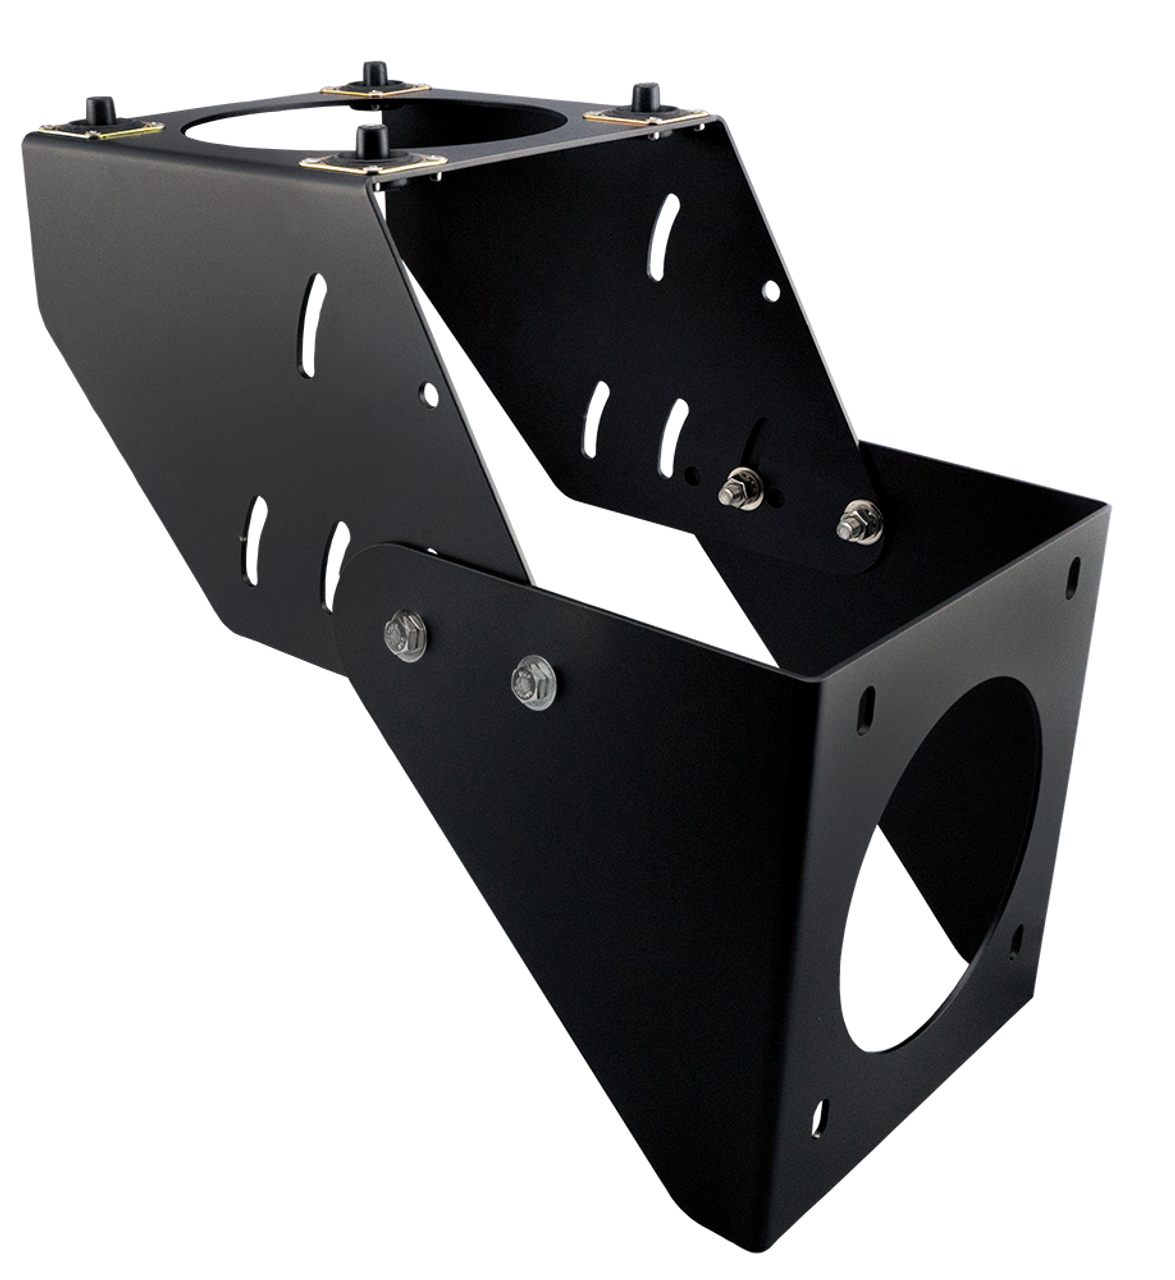 Cab Mount Bracket with Vibration Isolation